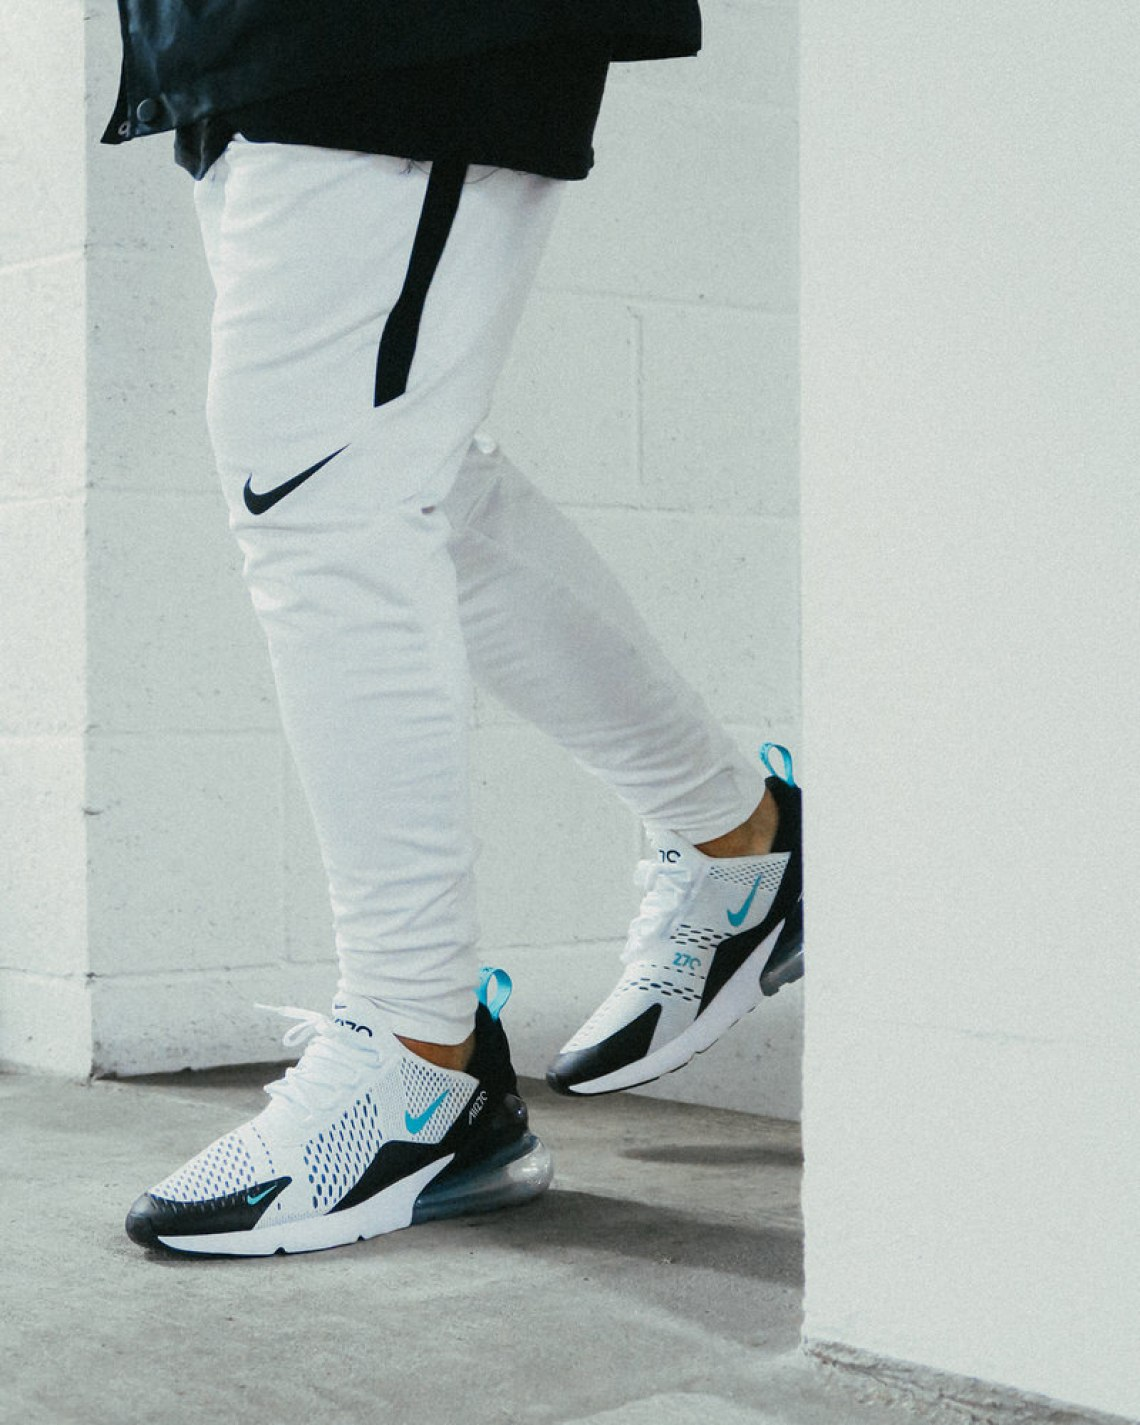 Nike Air Max 270 Quot Dusty Cactus Quot On Foot Look Nice Kicks